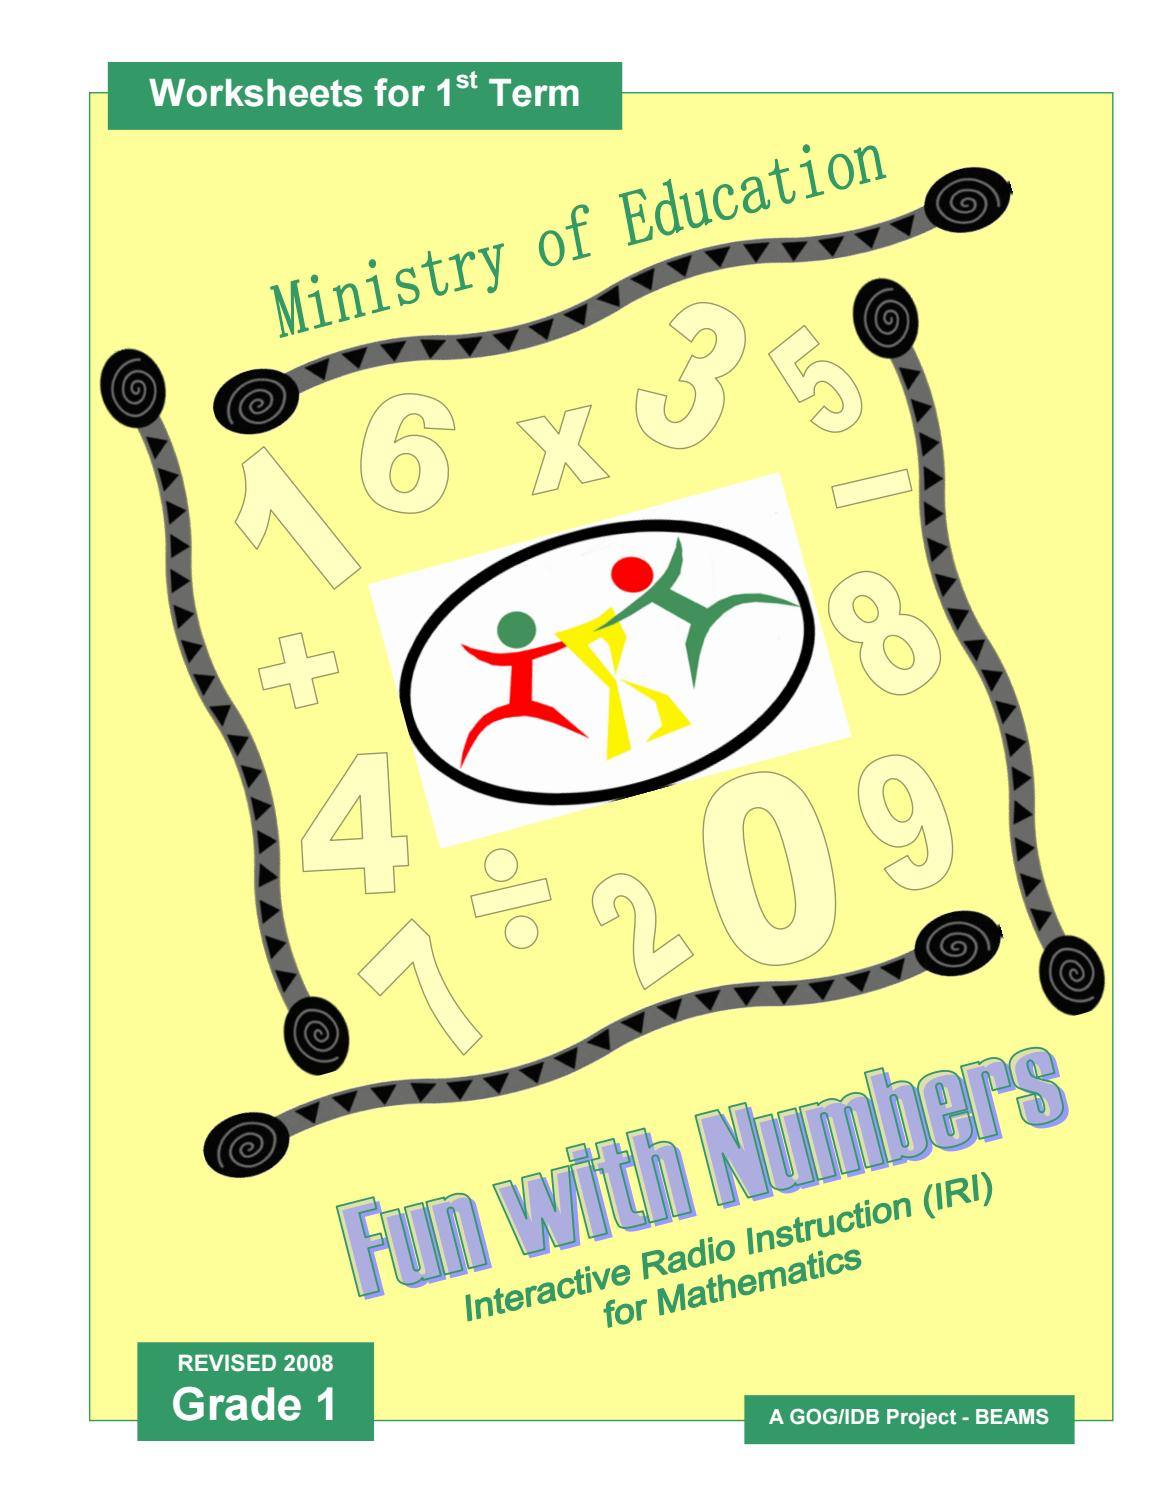 hight resolution of IRI Fun with Numbers Worksheets - Grade 1 - Term 1 by Ministry of Education  Guyana - issuu